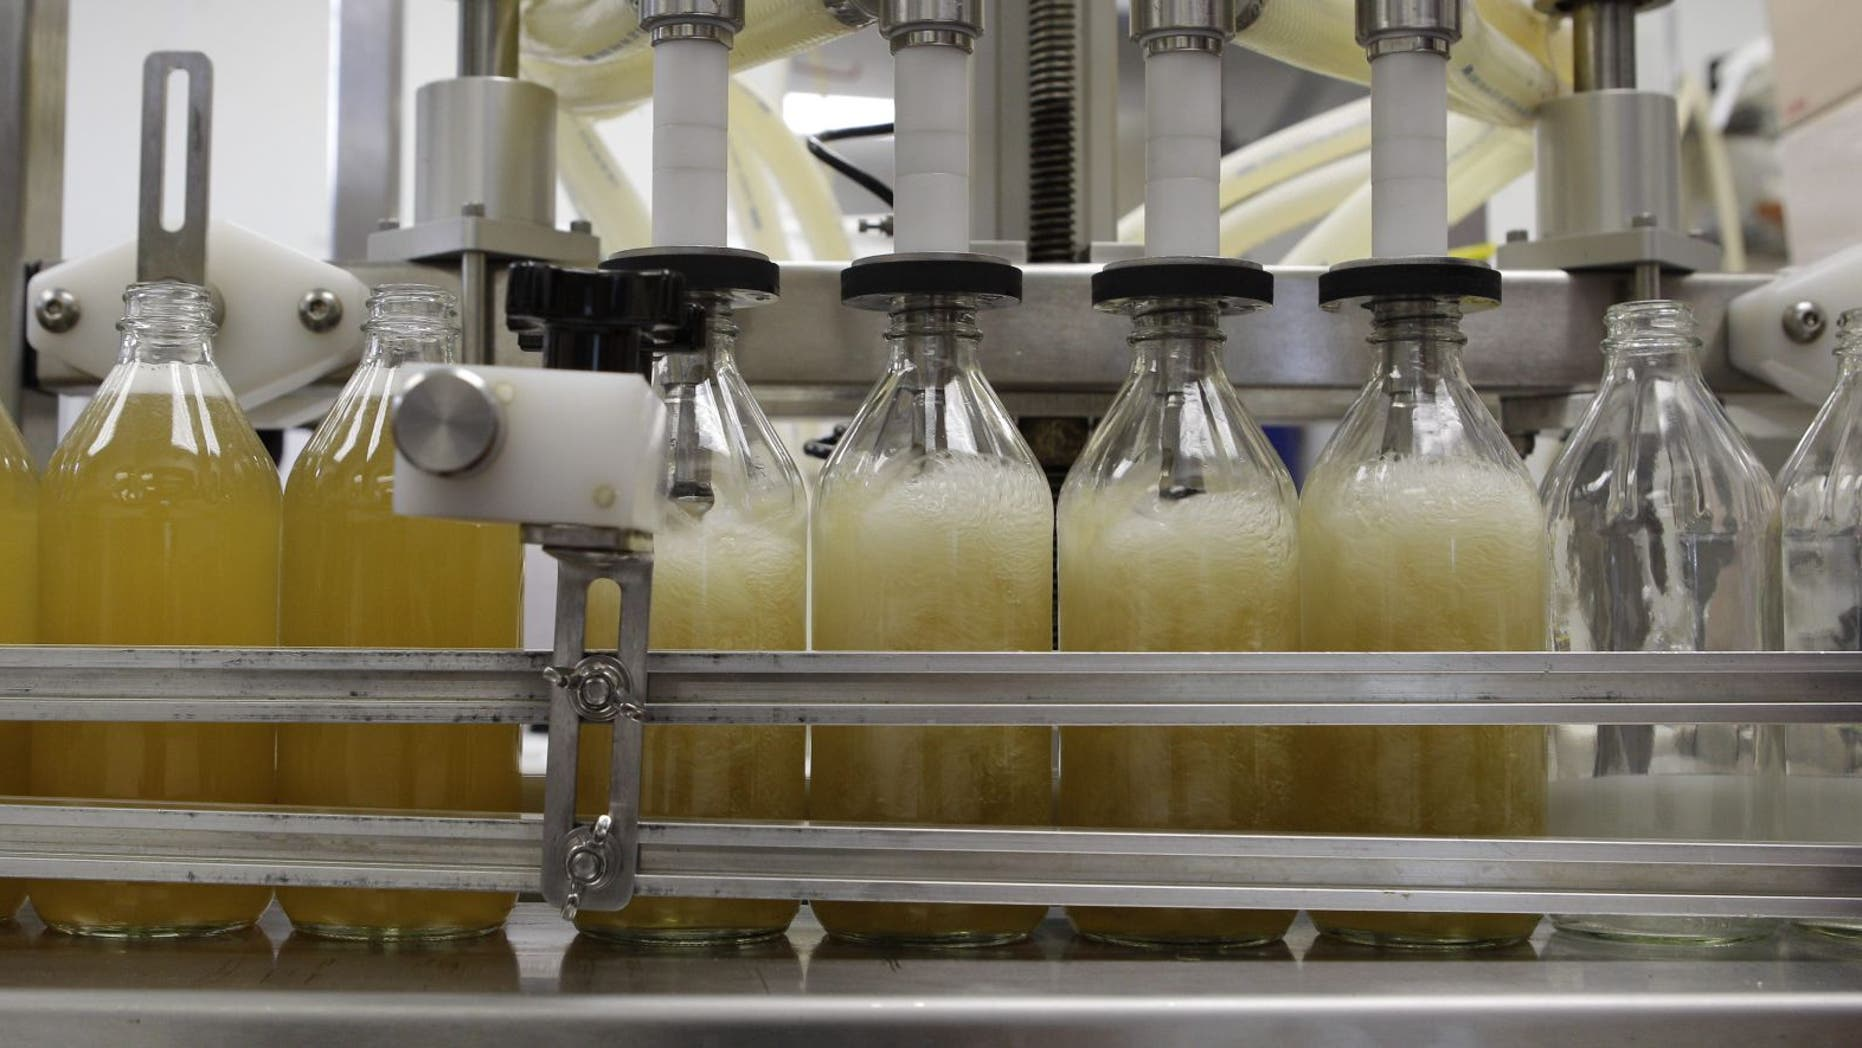 Regulators and retailers are concerned that kombucha may need to be regulated as an alcoholic drink. (AP Photo/Charles Krupa)